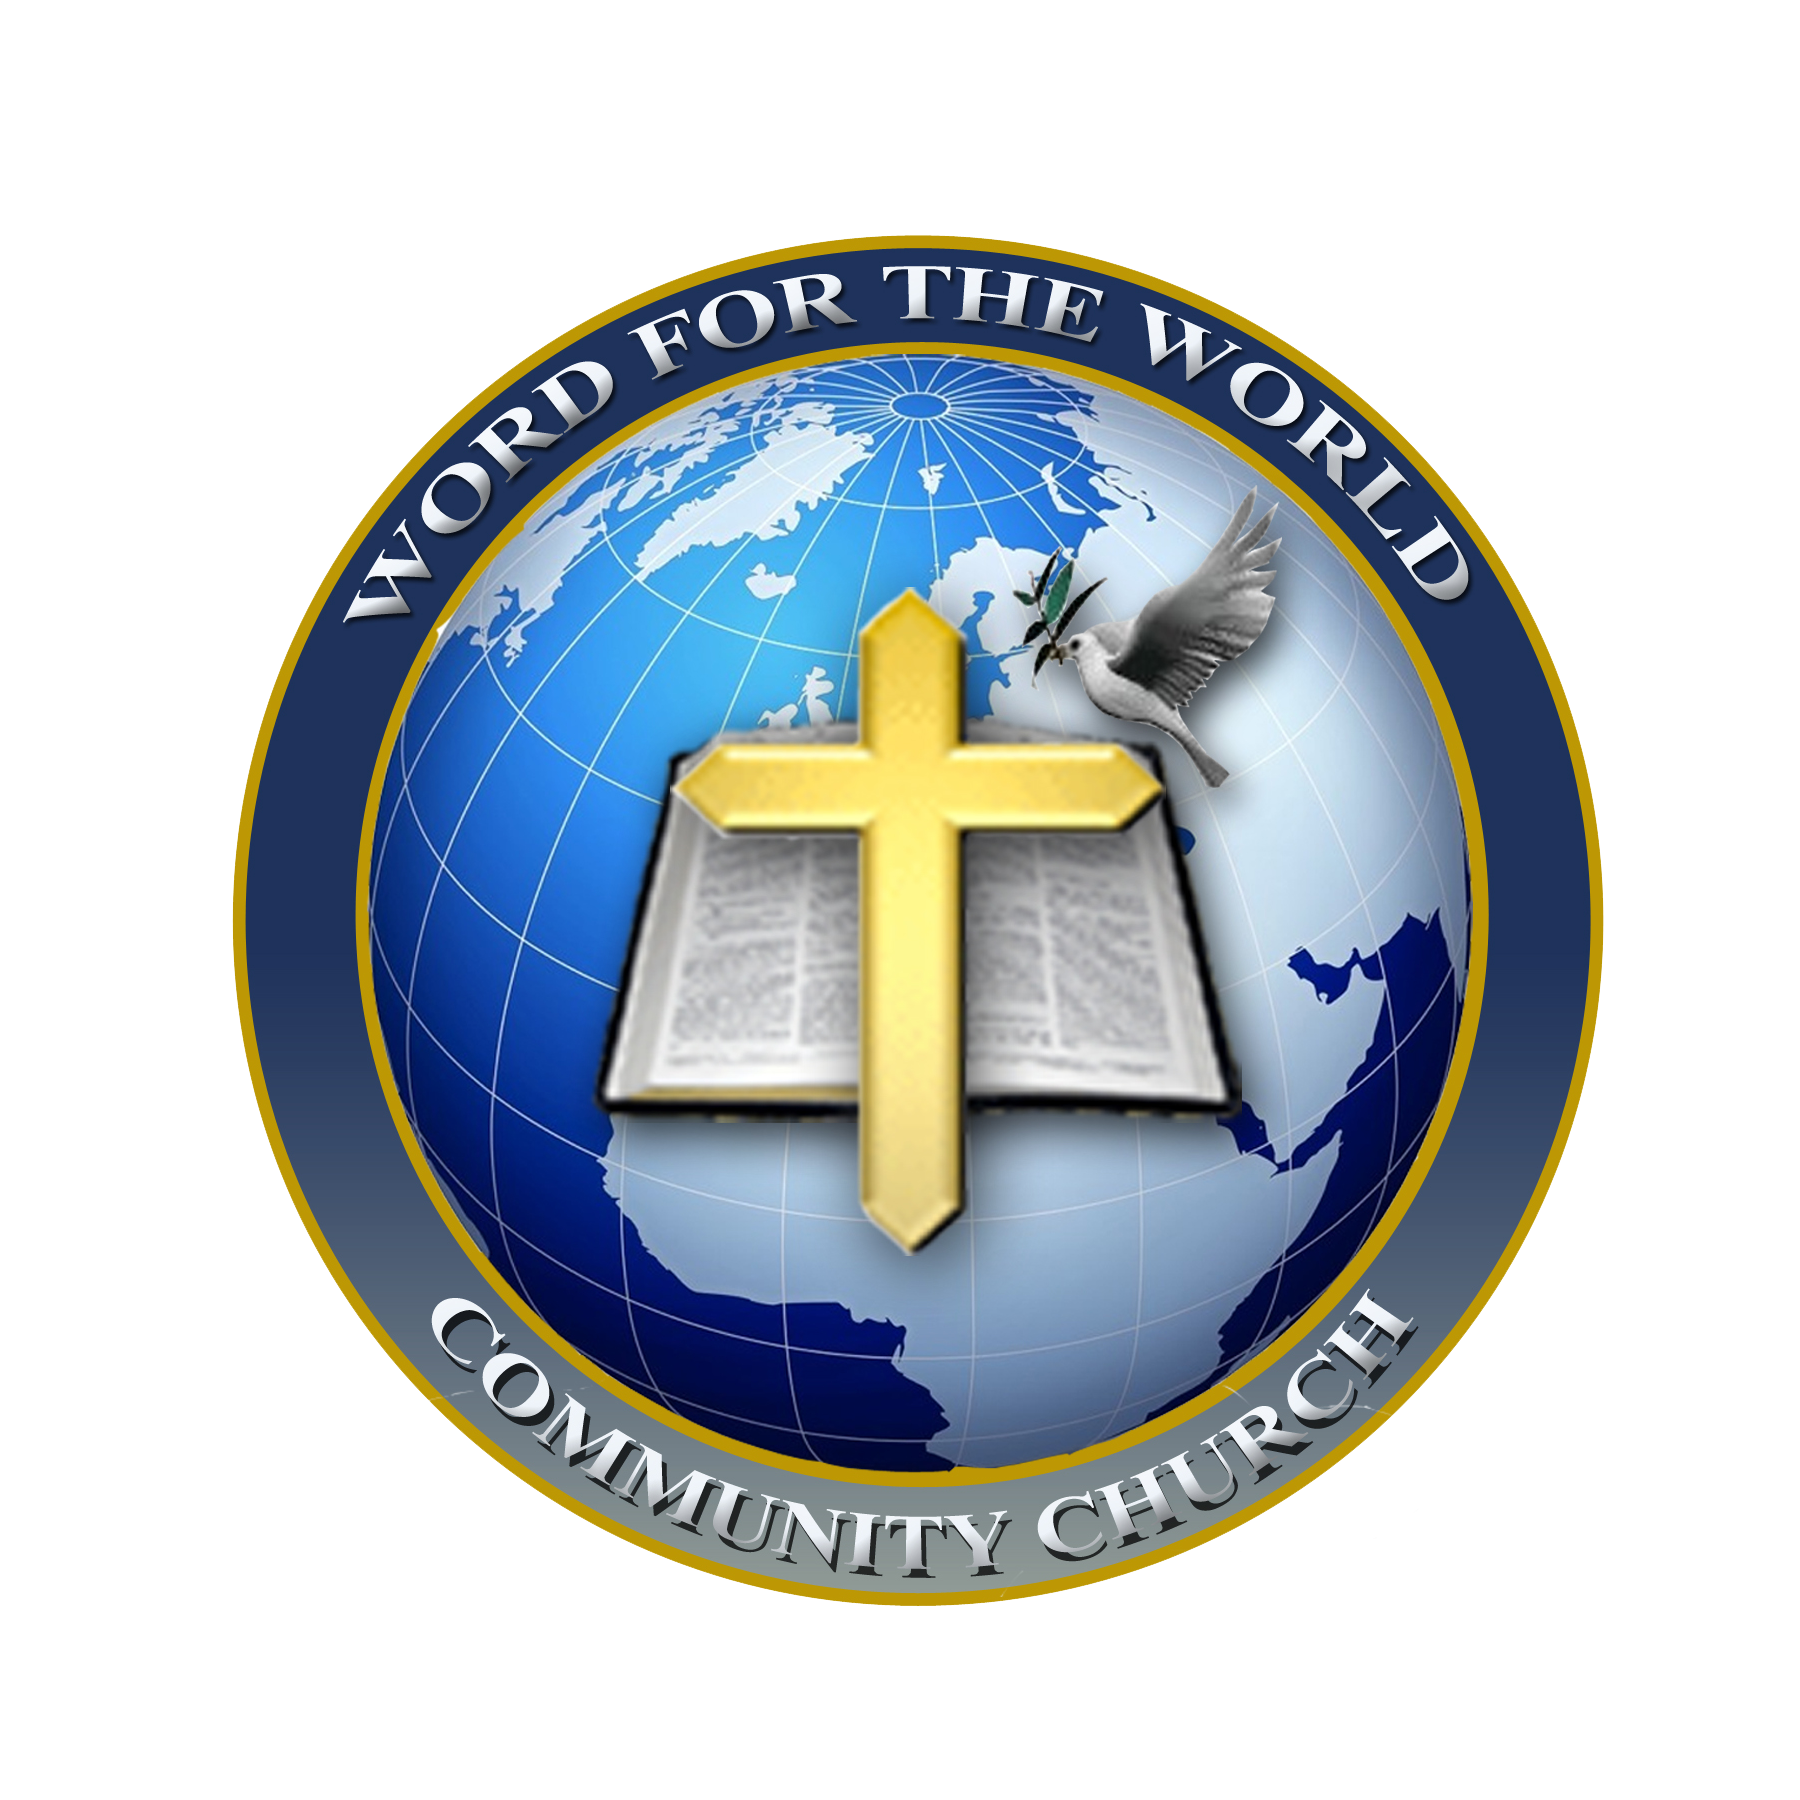 Word For The World Community Church